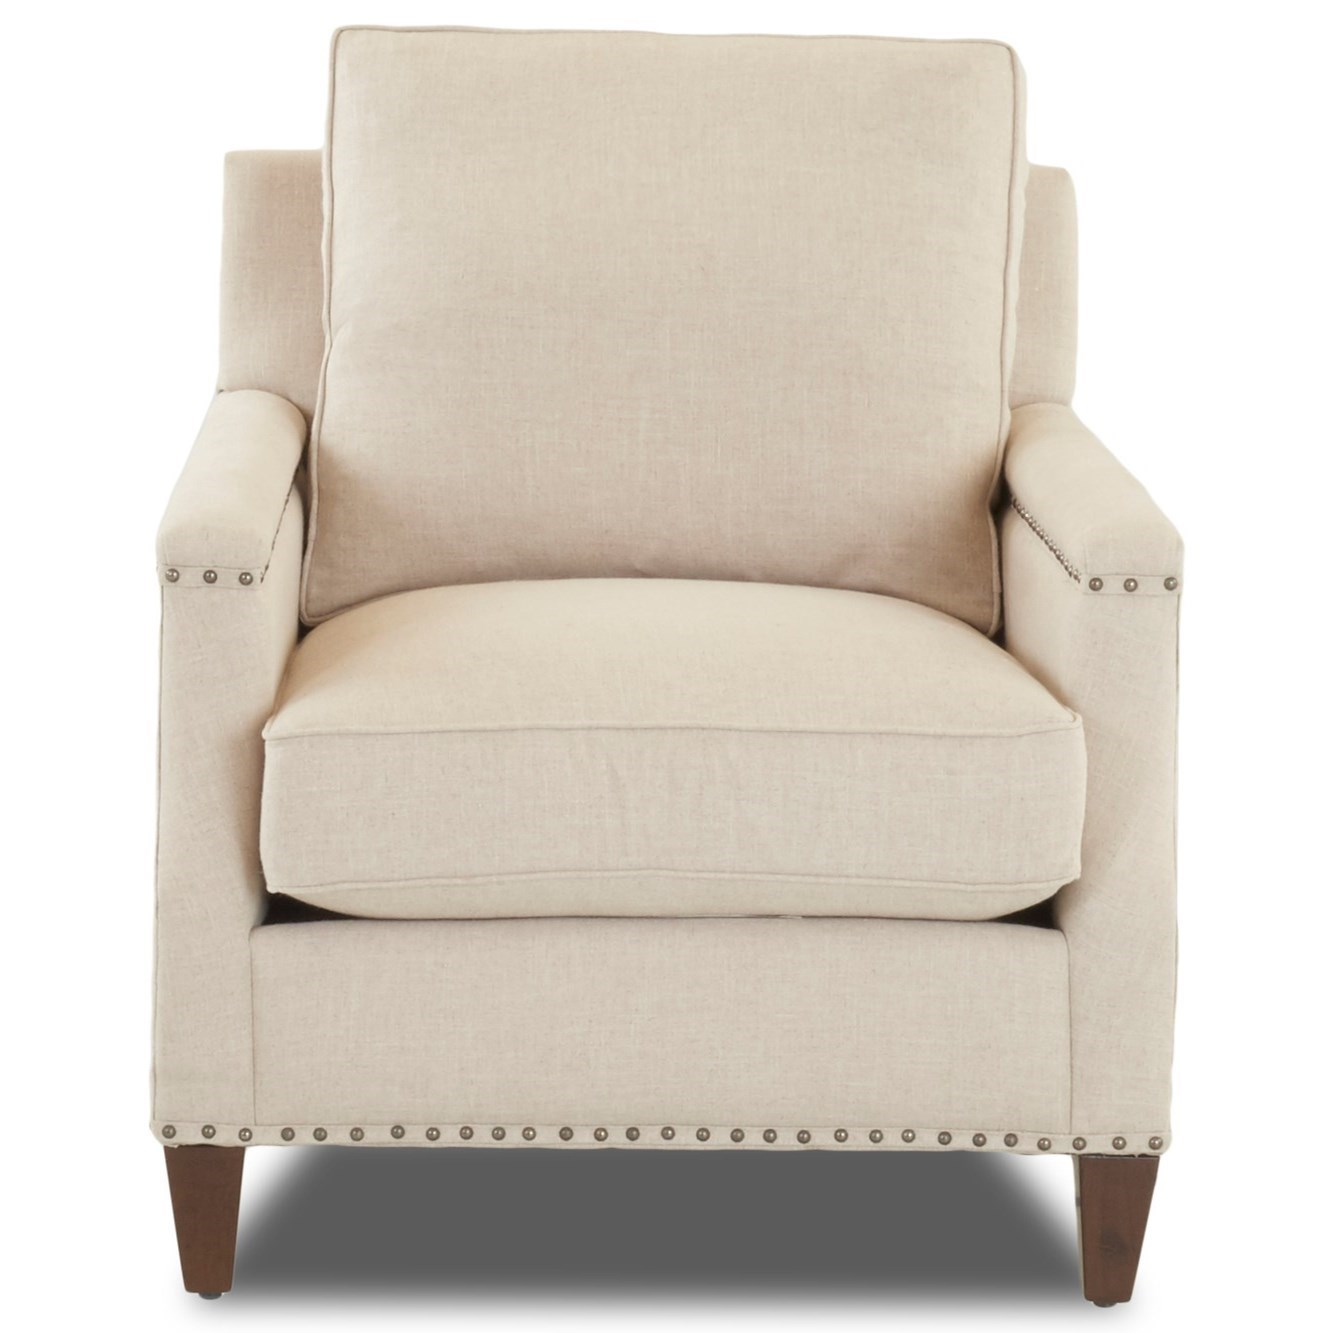 Klaussner Bond (Distinctions By Klaussner)Chair